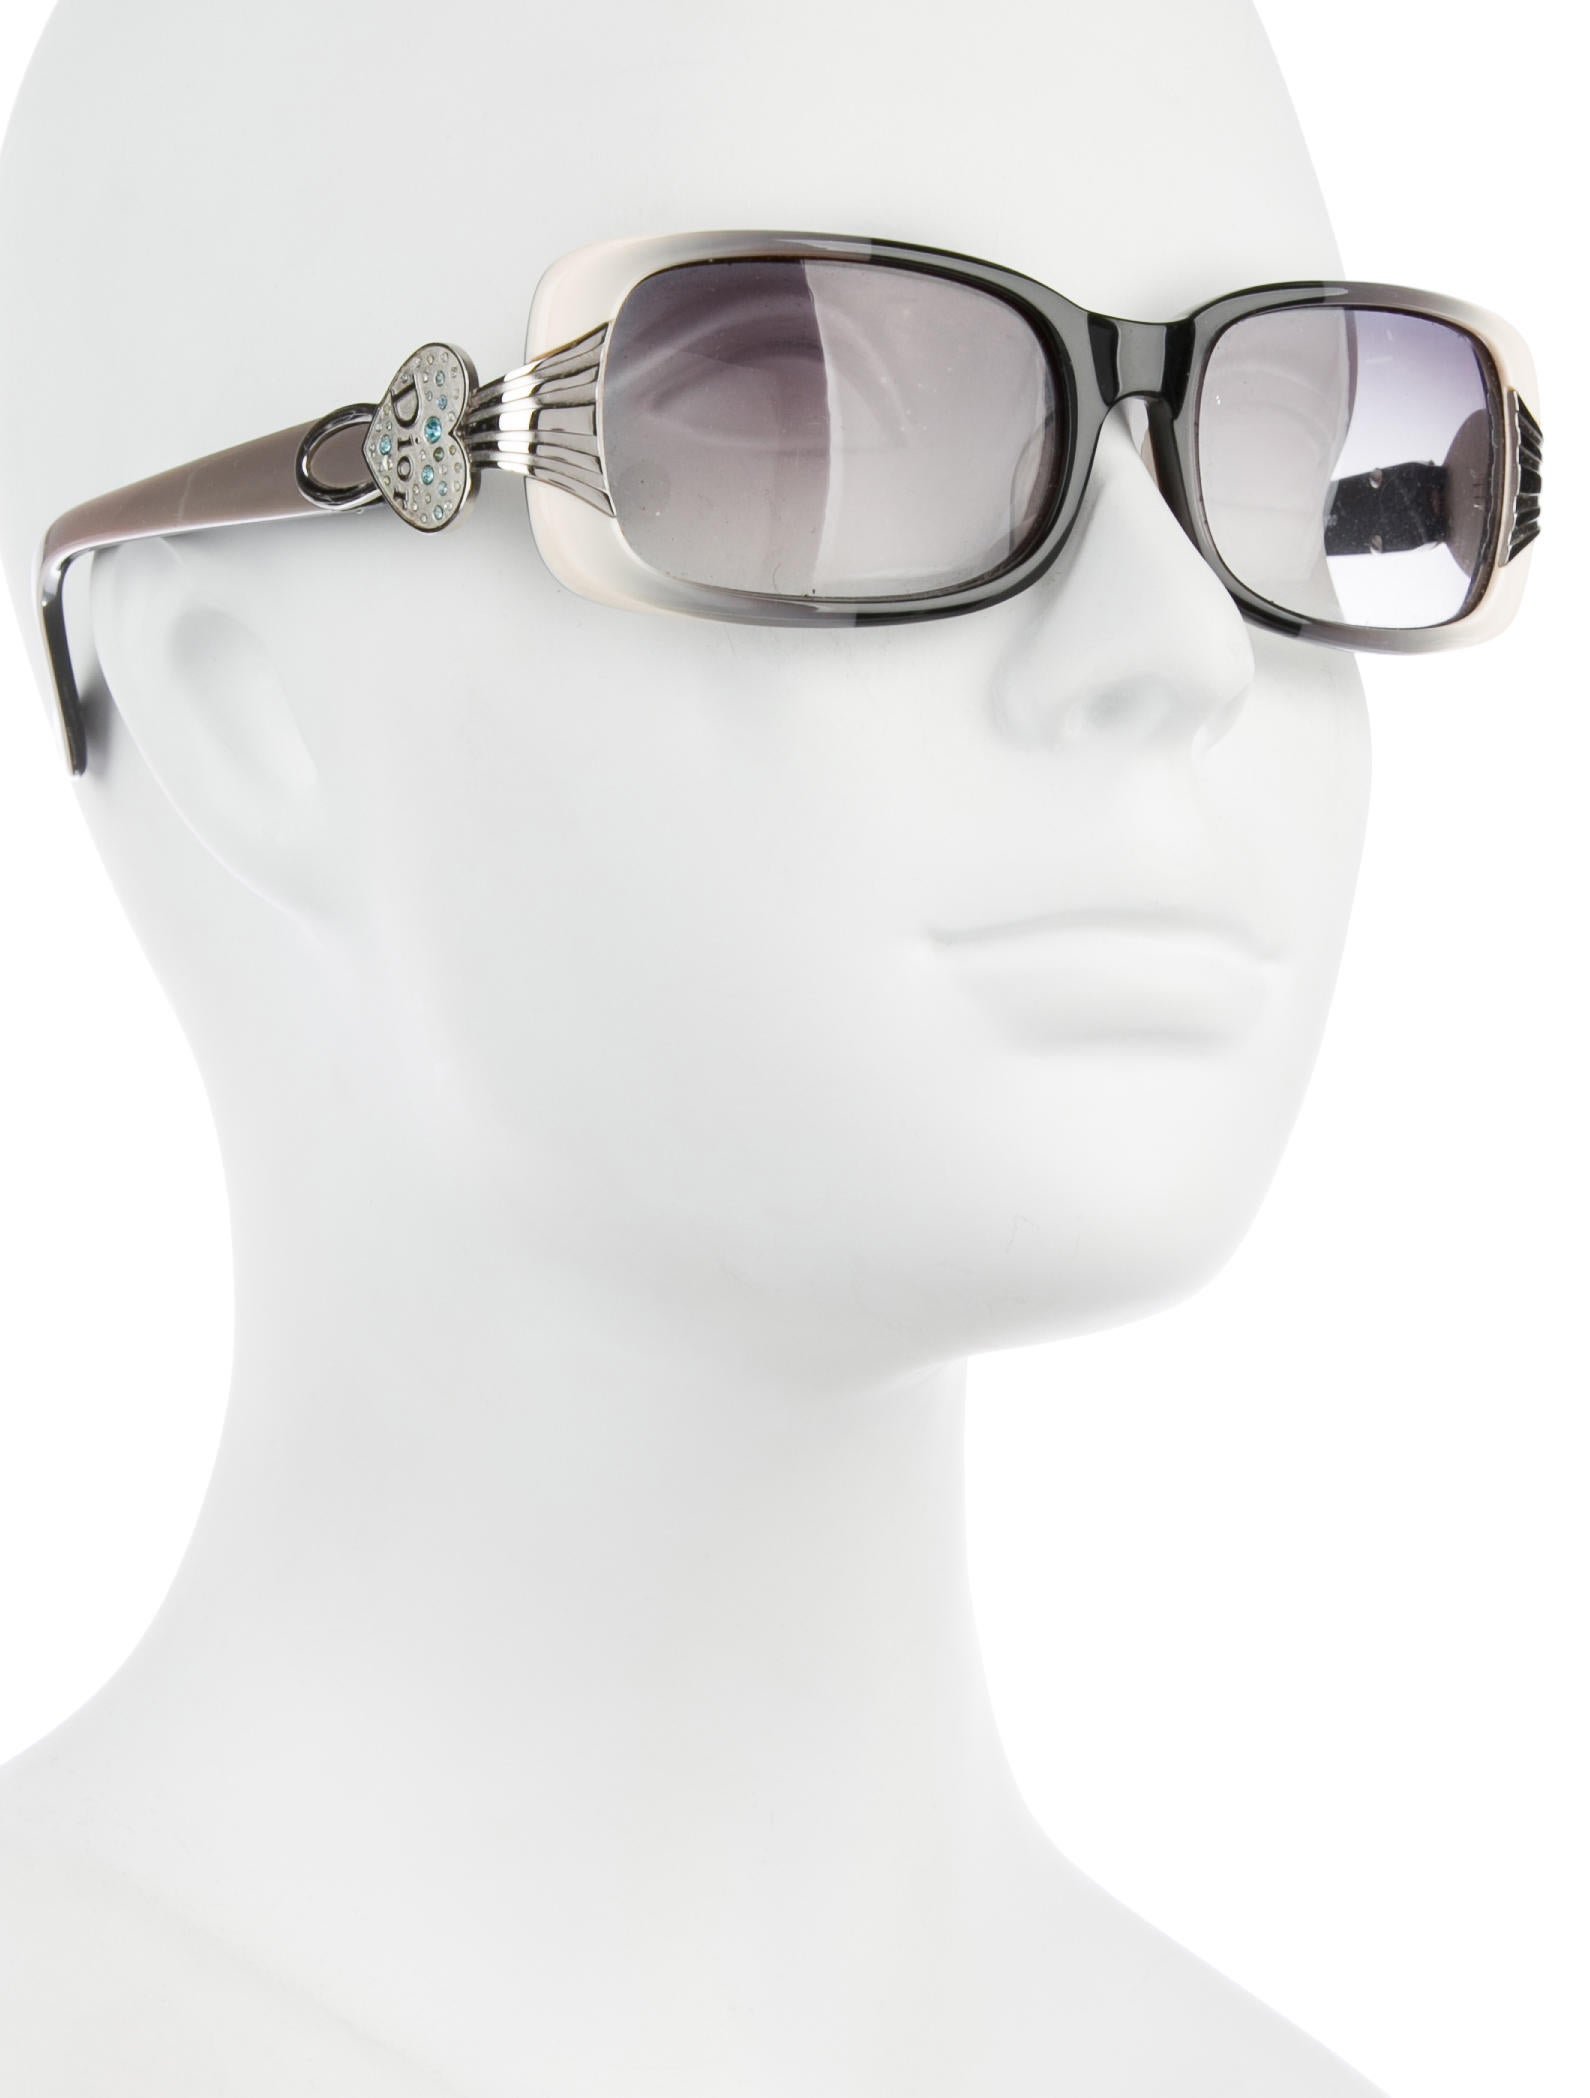 815c0edff794 Christian Dior Vintage Narrow Sunglasses - Accessories - CHR67802 ...